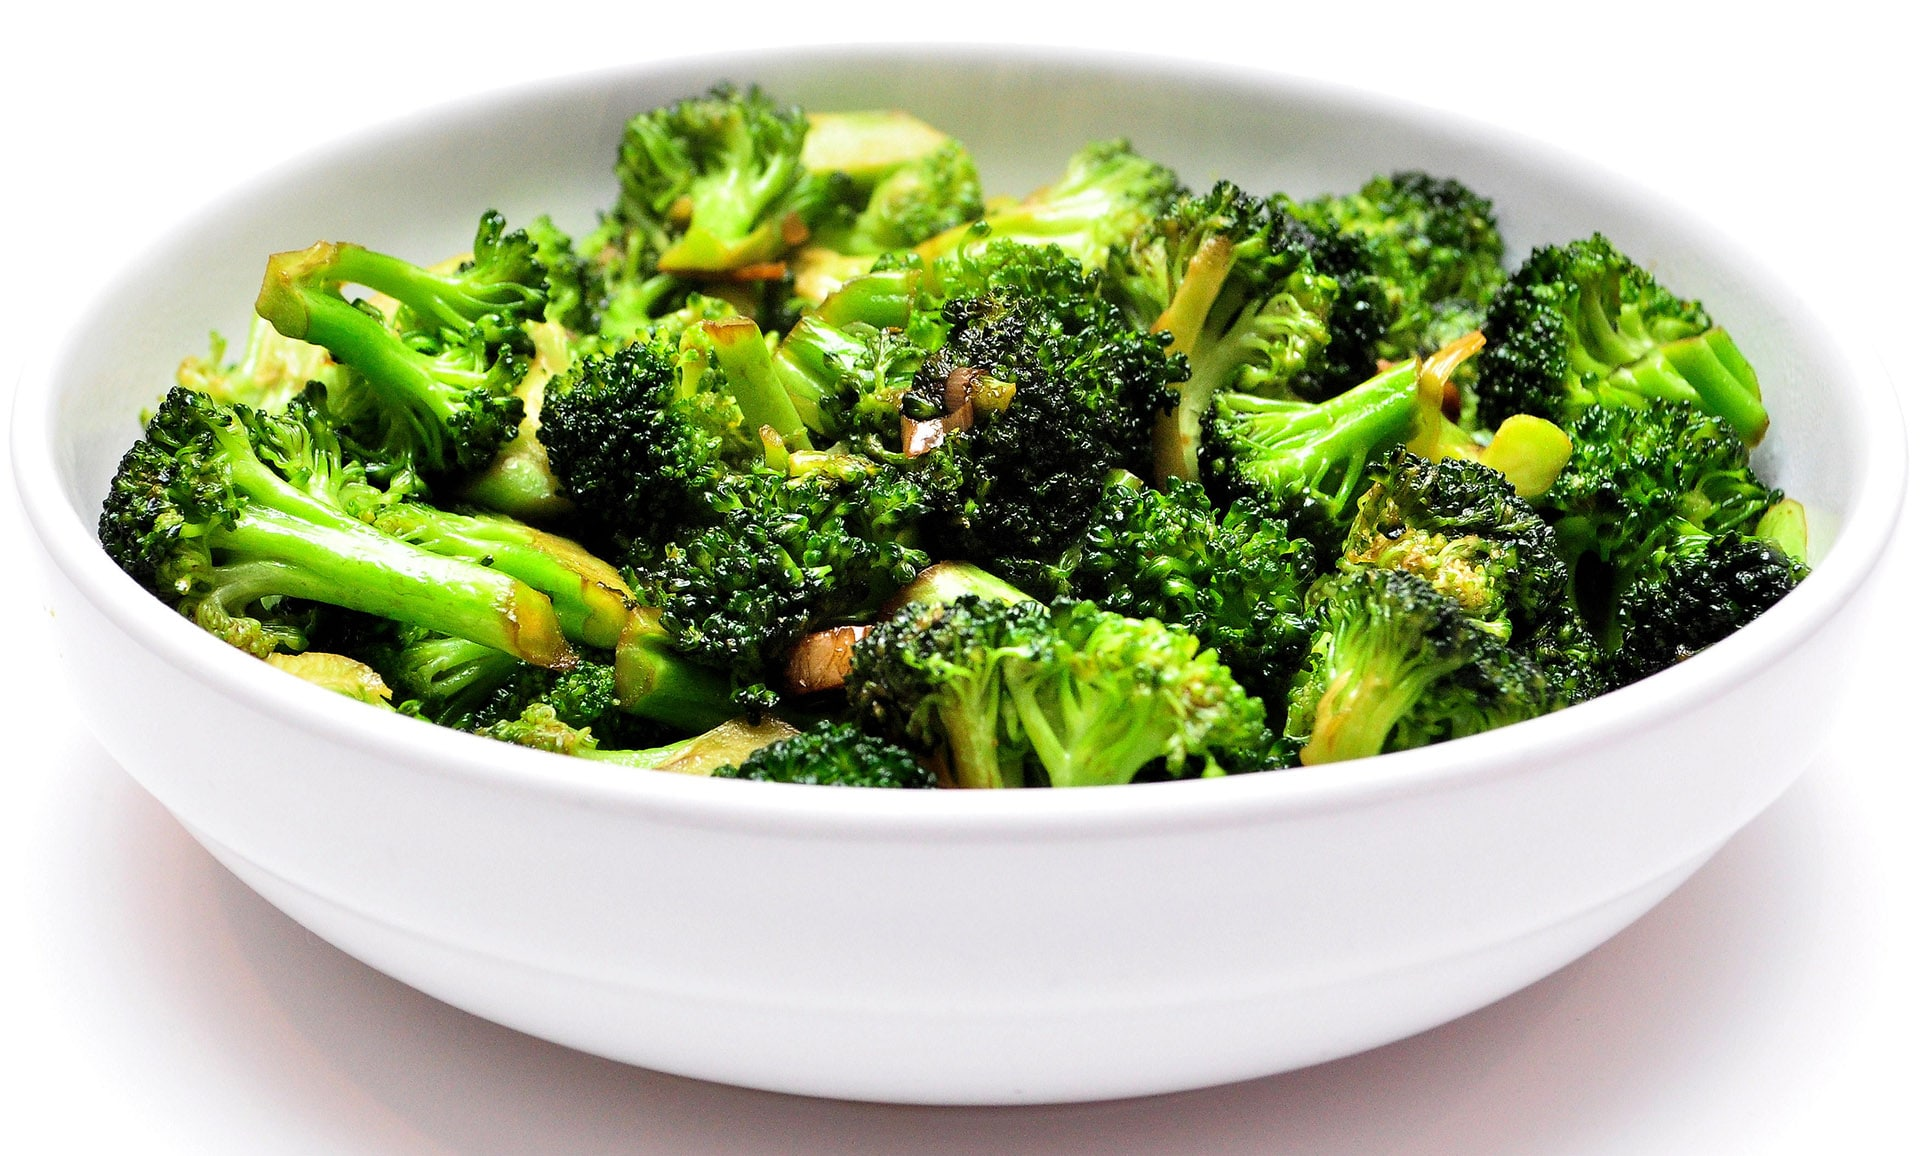 Garlic Gingered Broccoli